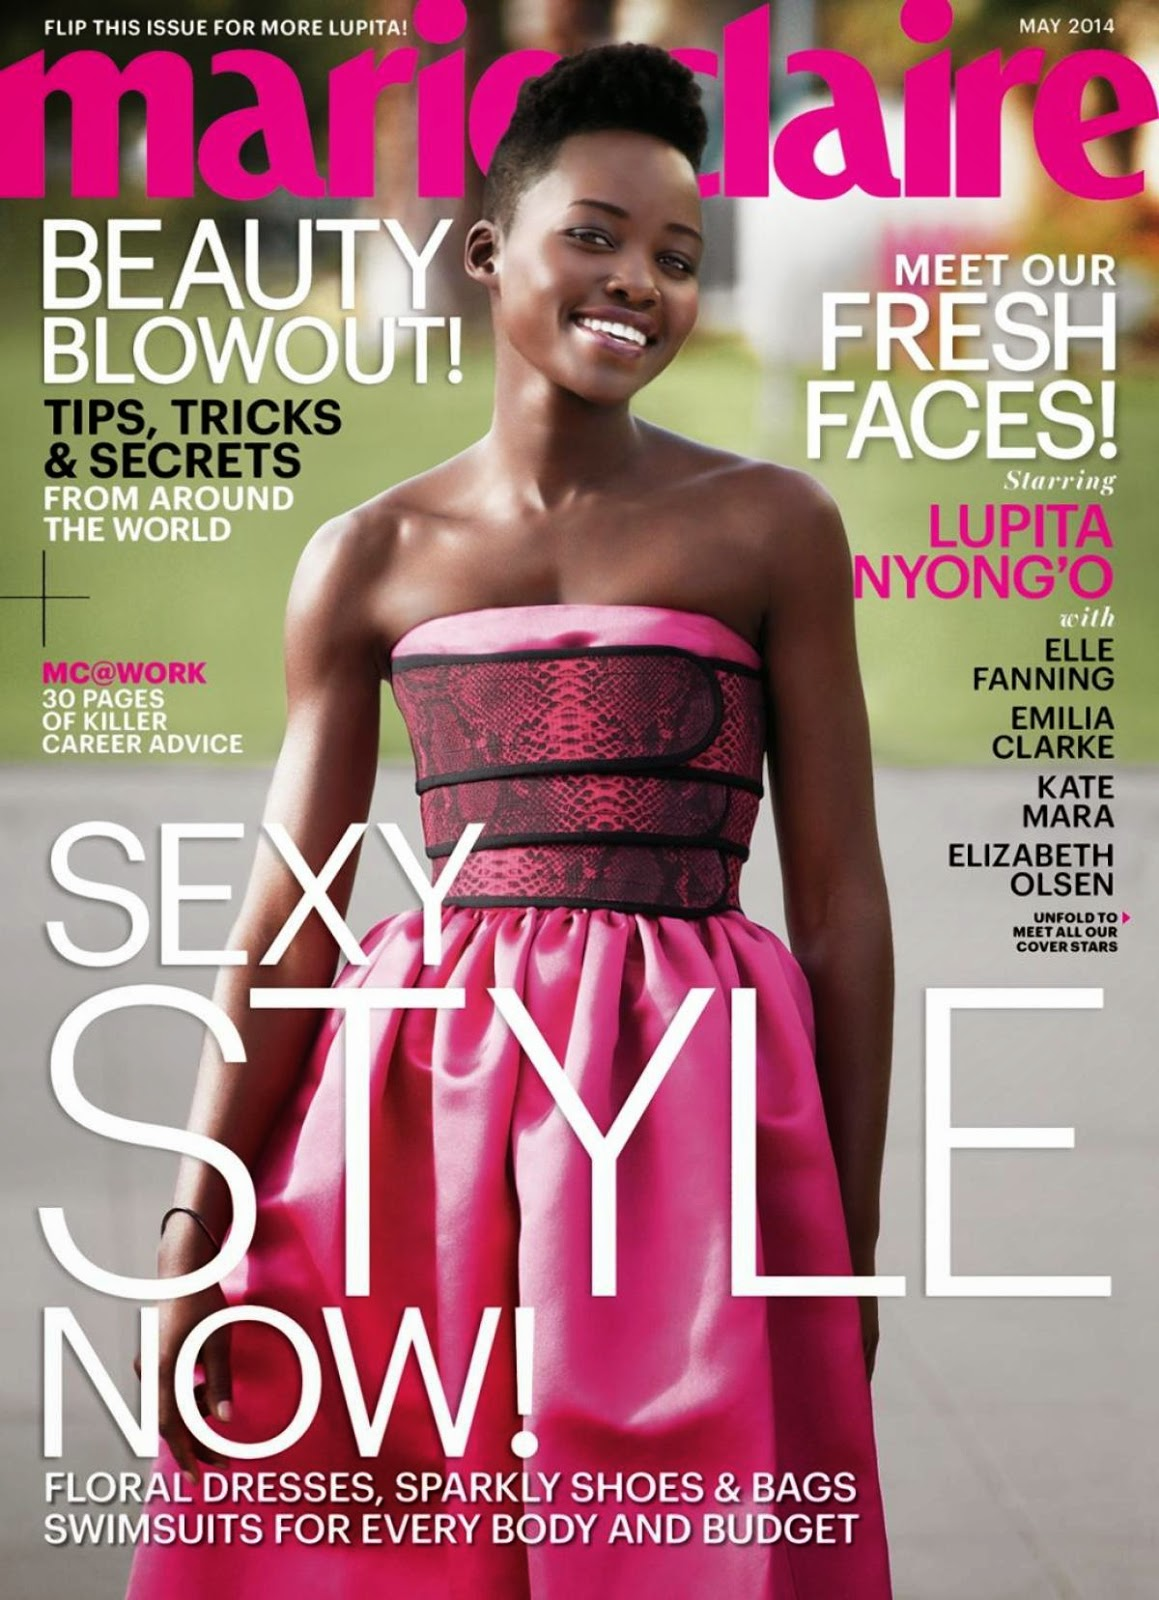 Lupita Nyong'o, Kate Mara, Elle Fanning, Emilia Clarke and Elizabeth Olsen are Marie Claire Fresh Face Cover Girls